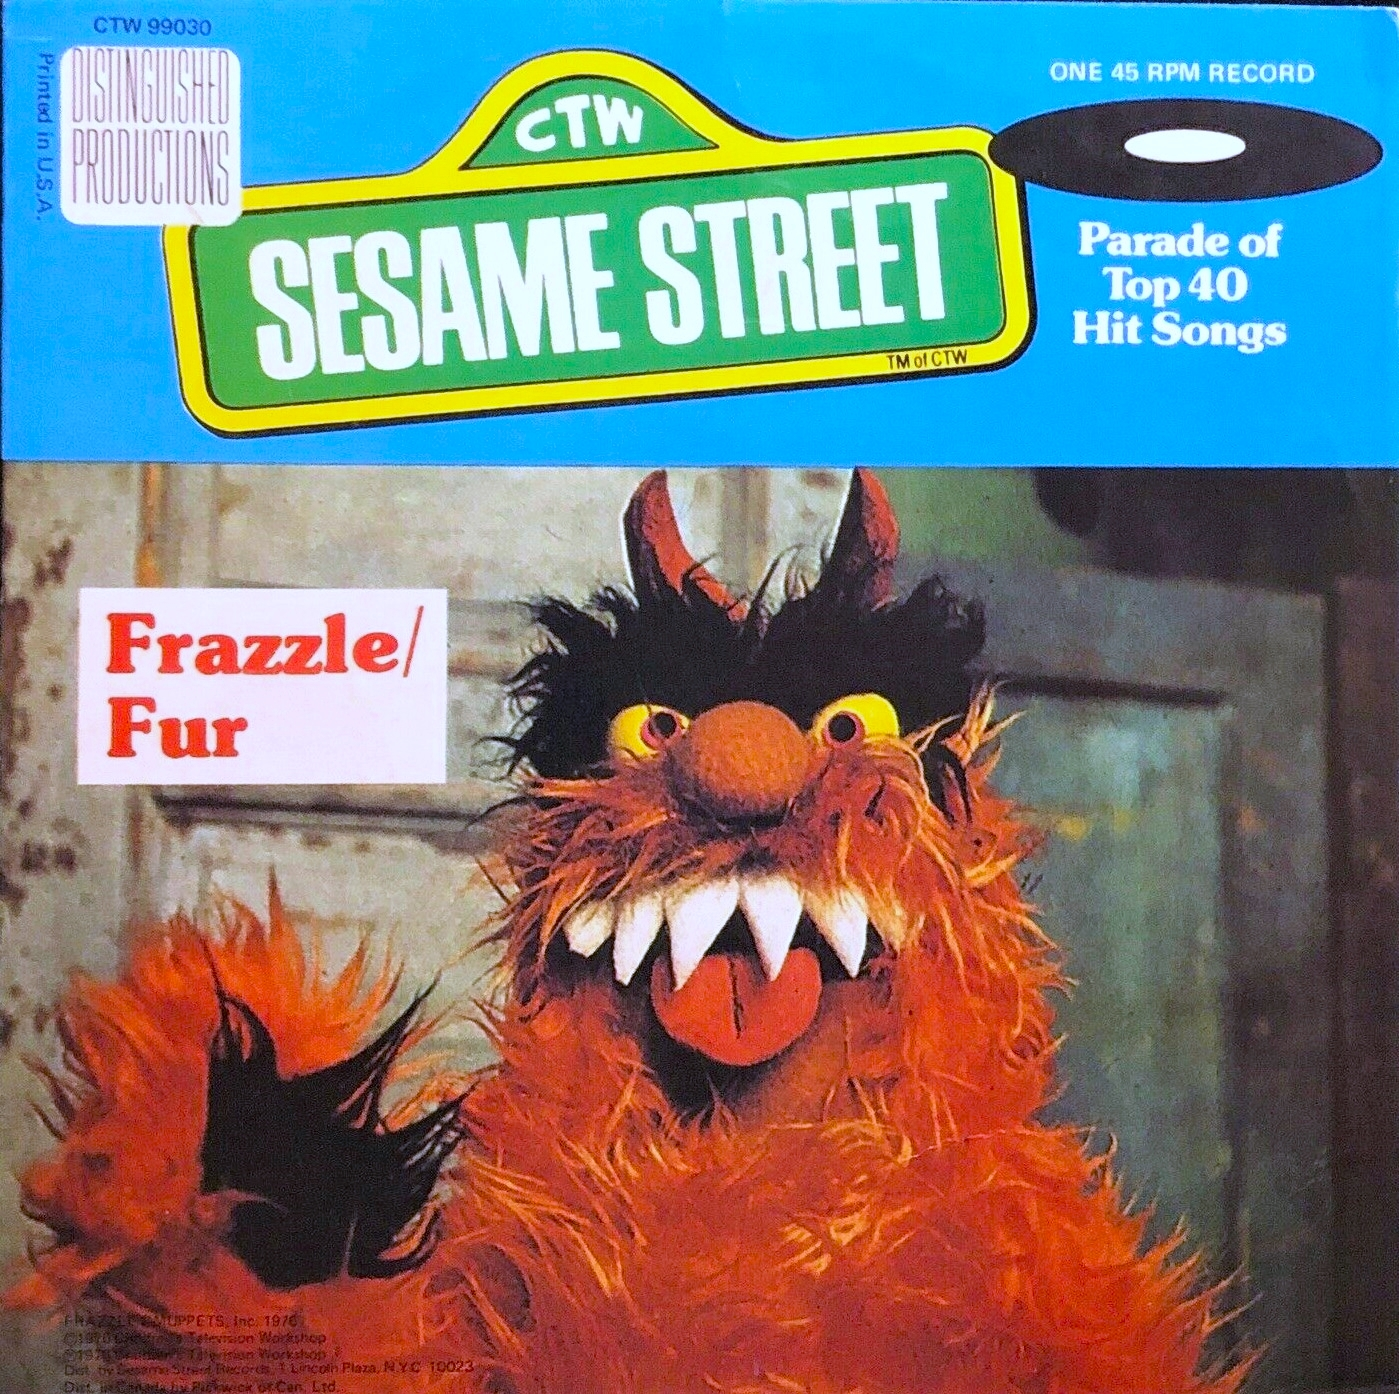 FrazzleFurSingle